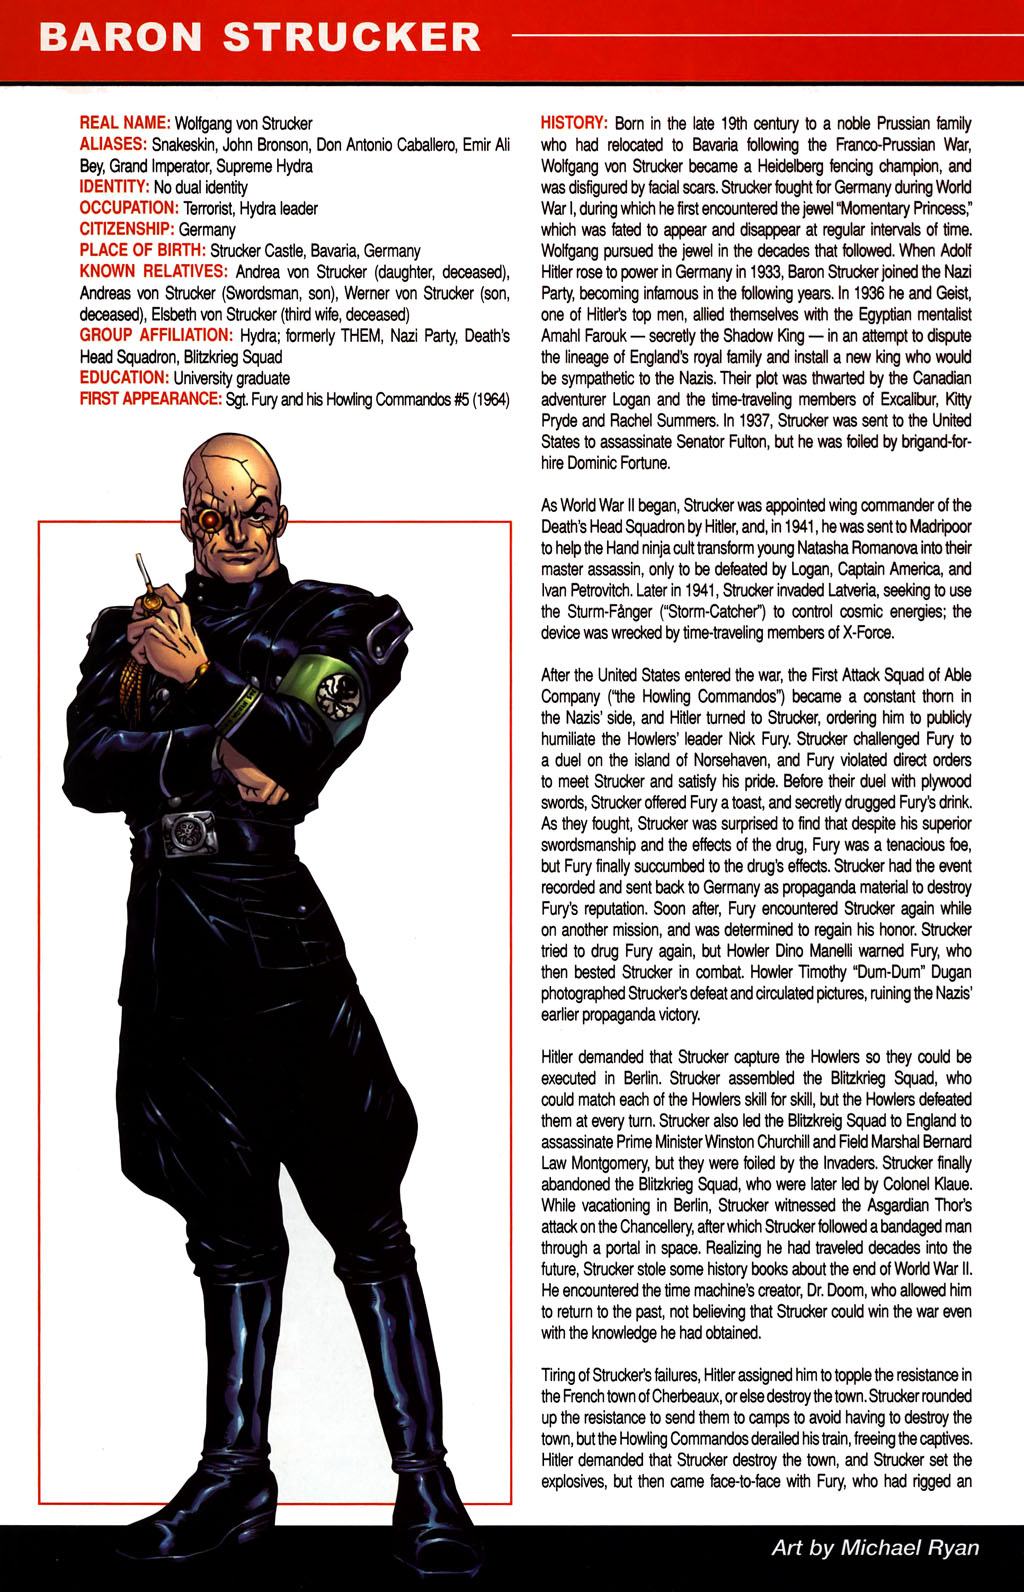 Read online All-New Official Handbook of the Marvel Universe A to Z comic -  Issue #1 - 60